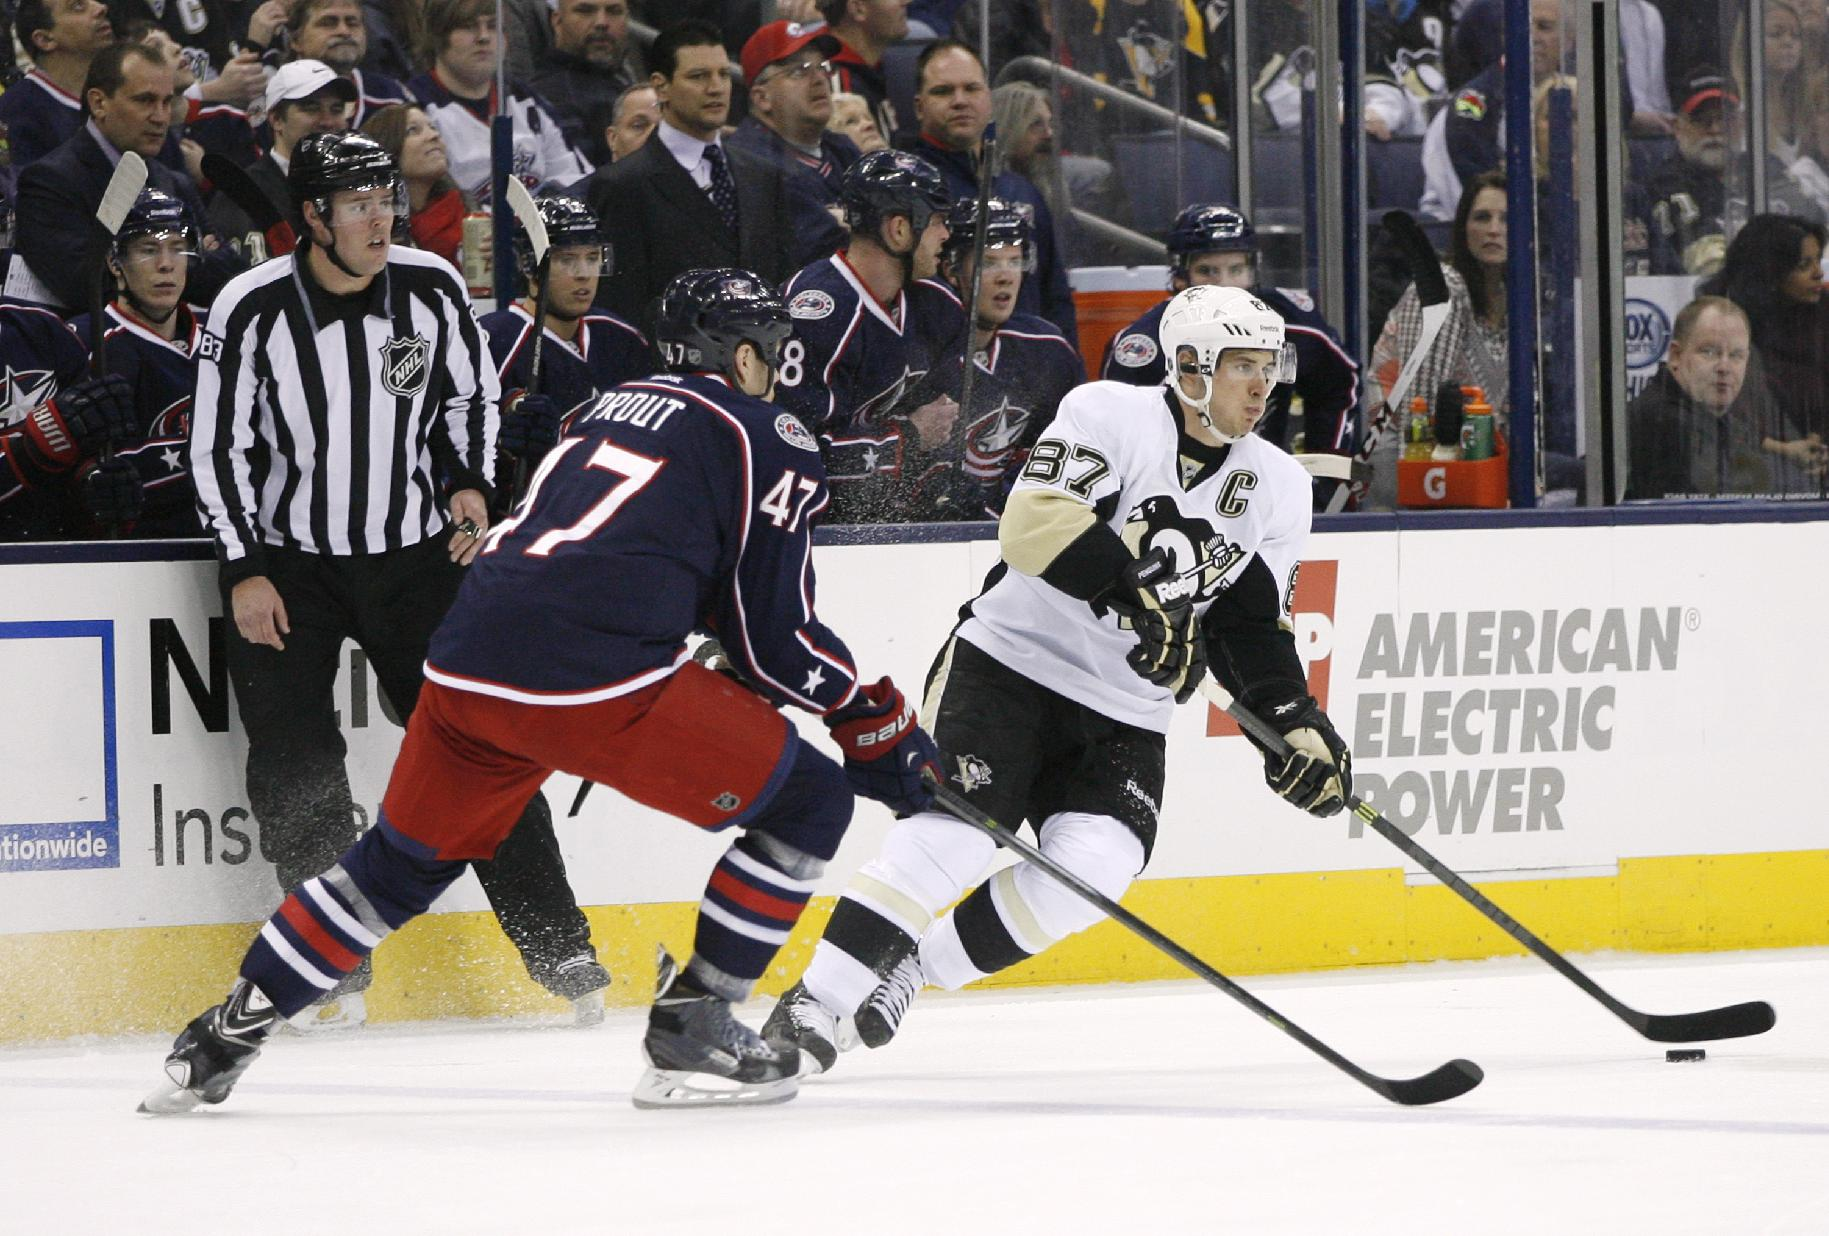 Pittsburgh Penguins' Sidney Crosby (87) keeps the puck away from Columbus Blue Jackets' Dalton Prout (47) during the first period of an NHL hockey game, Friday, March 28, 2014, in Columbus, Ohio